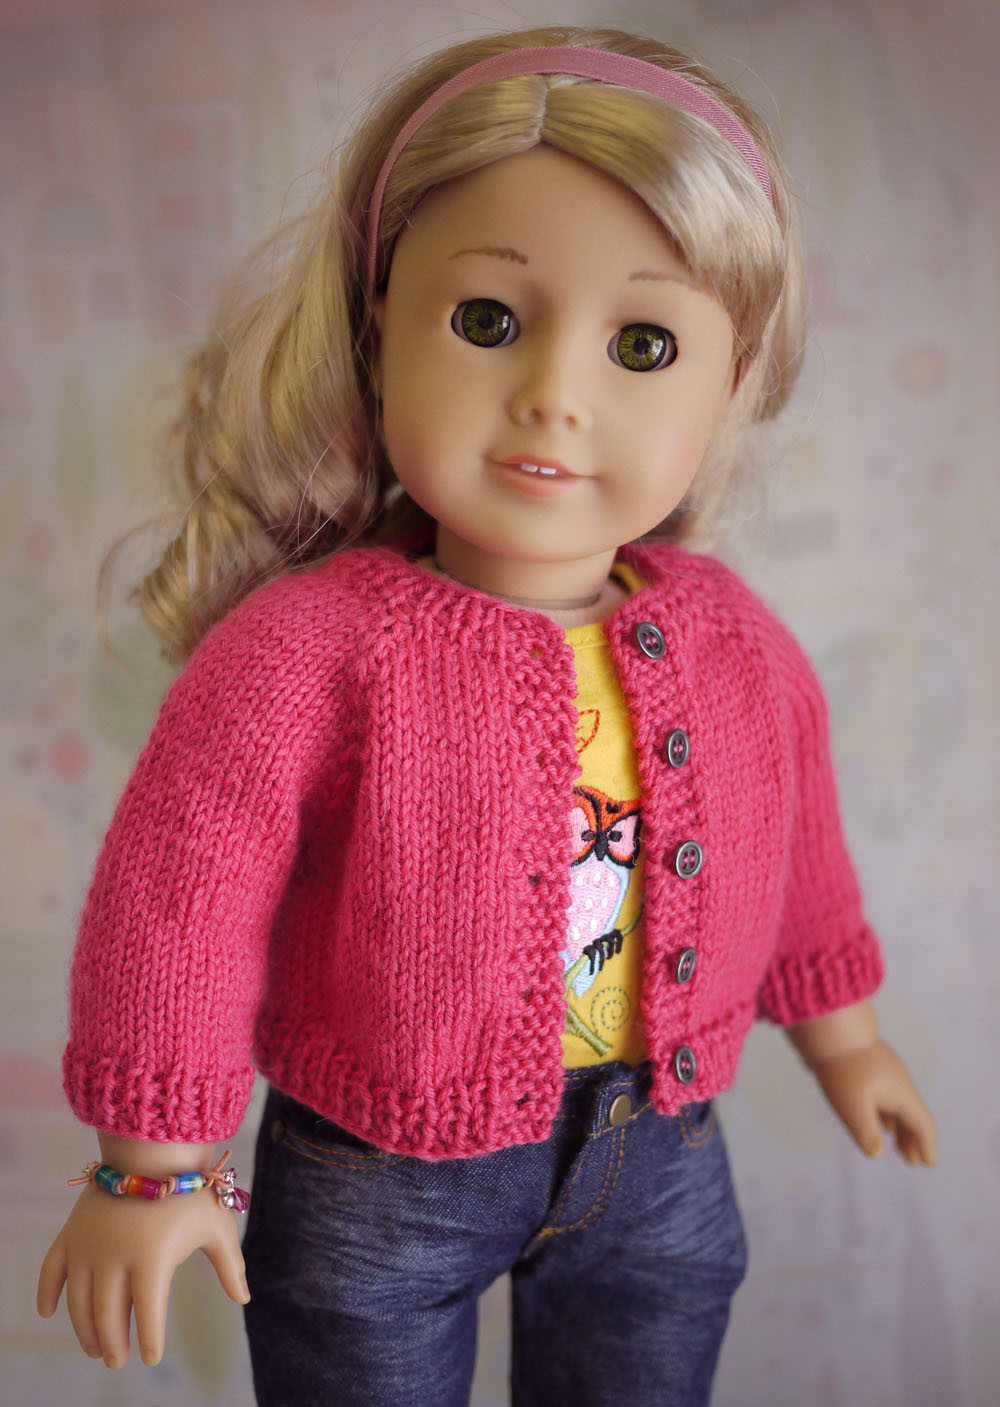 Best Of Knitting Patterns for American Girl Dolls Free Cardigan Knitting Patterns Of Top 49 Images Free Cardigan Knitting Patterns